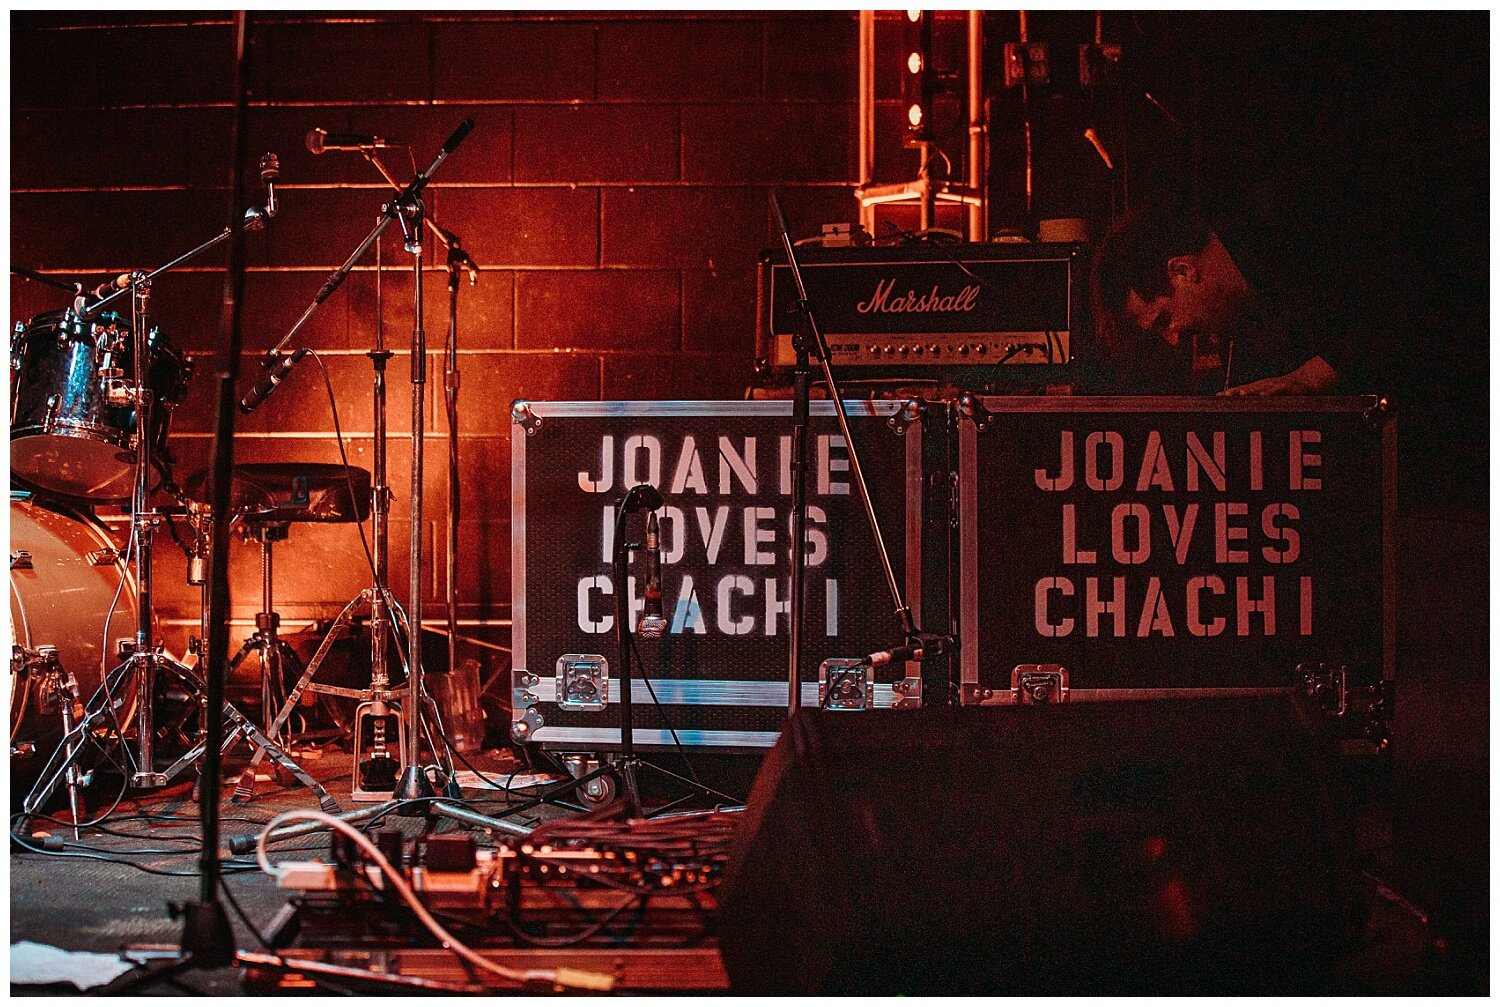 Joanie-Loves-Chachi- Vancouver-Concert-Event- Photographer- Claudia-Wyler-5.jpg